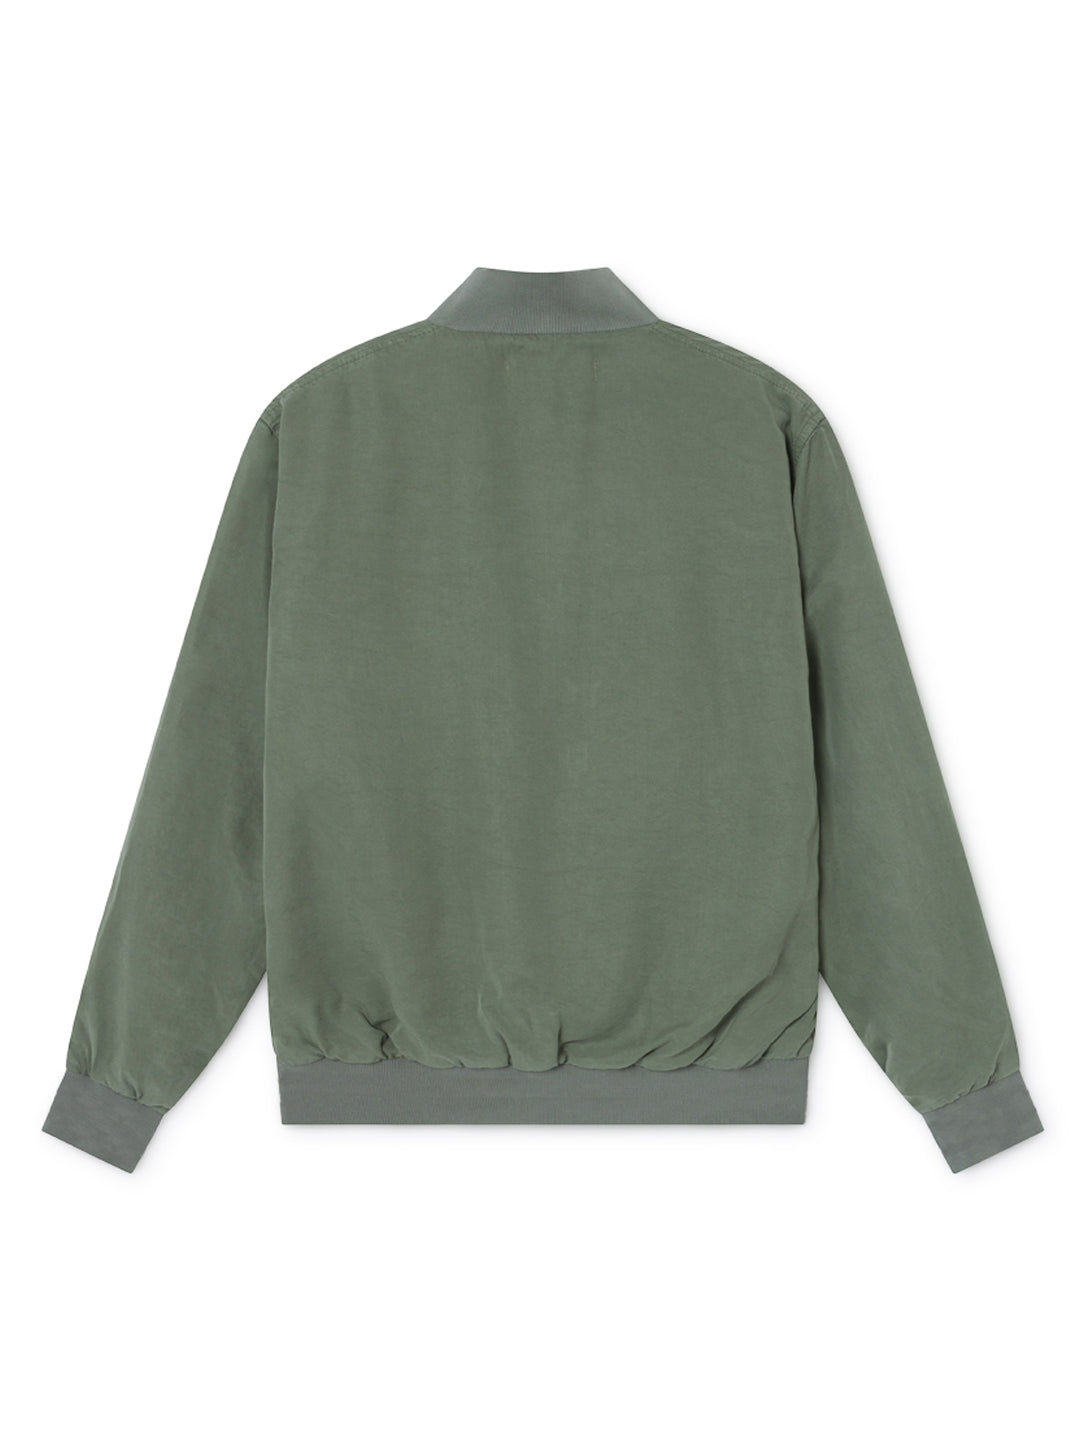 TWOTHIRDS Womens Jacket: Vulcano - Washed Green back